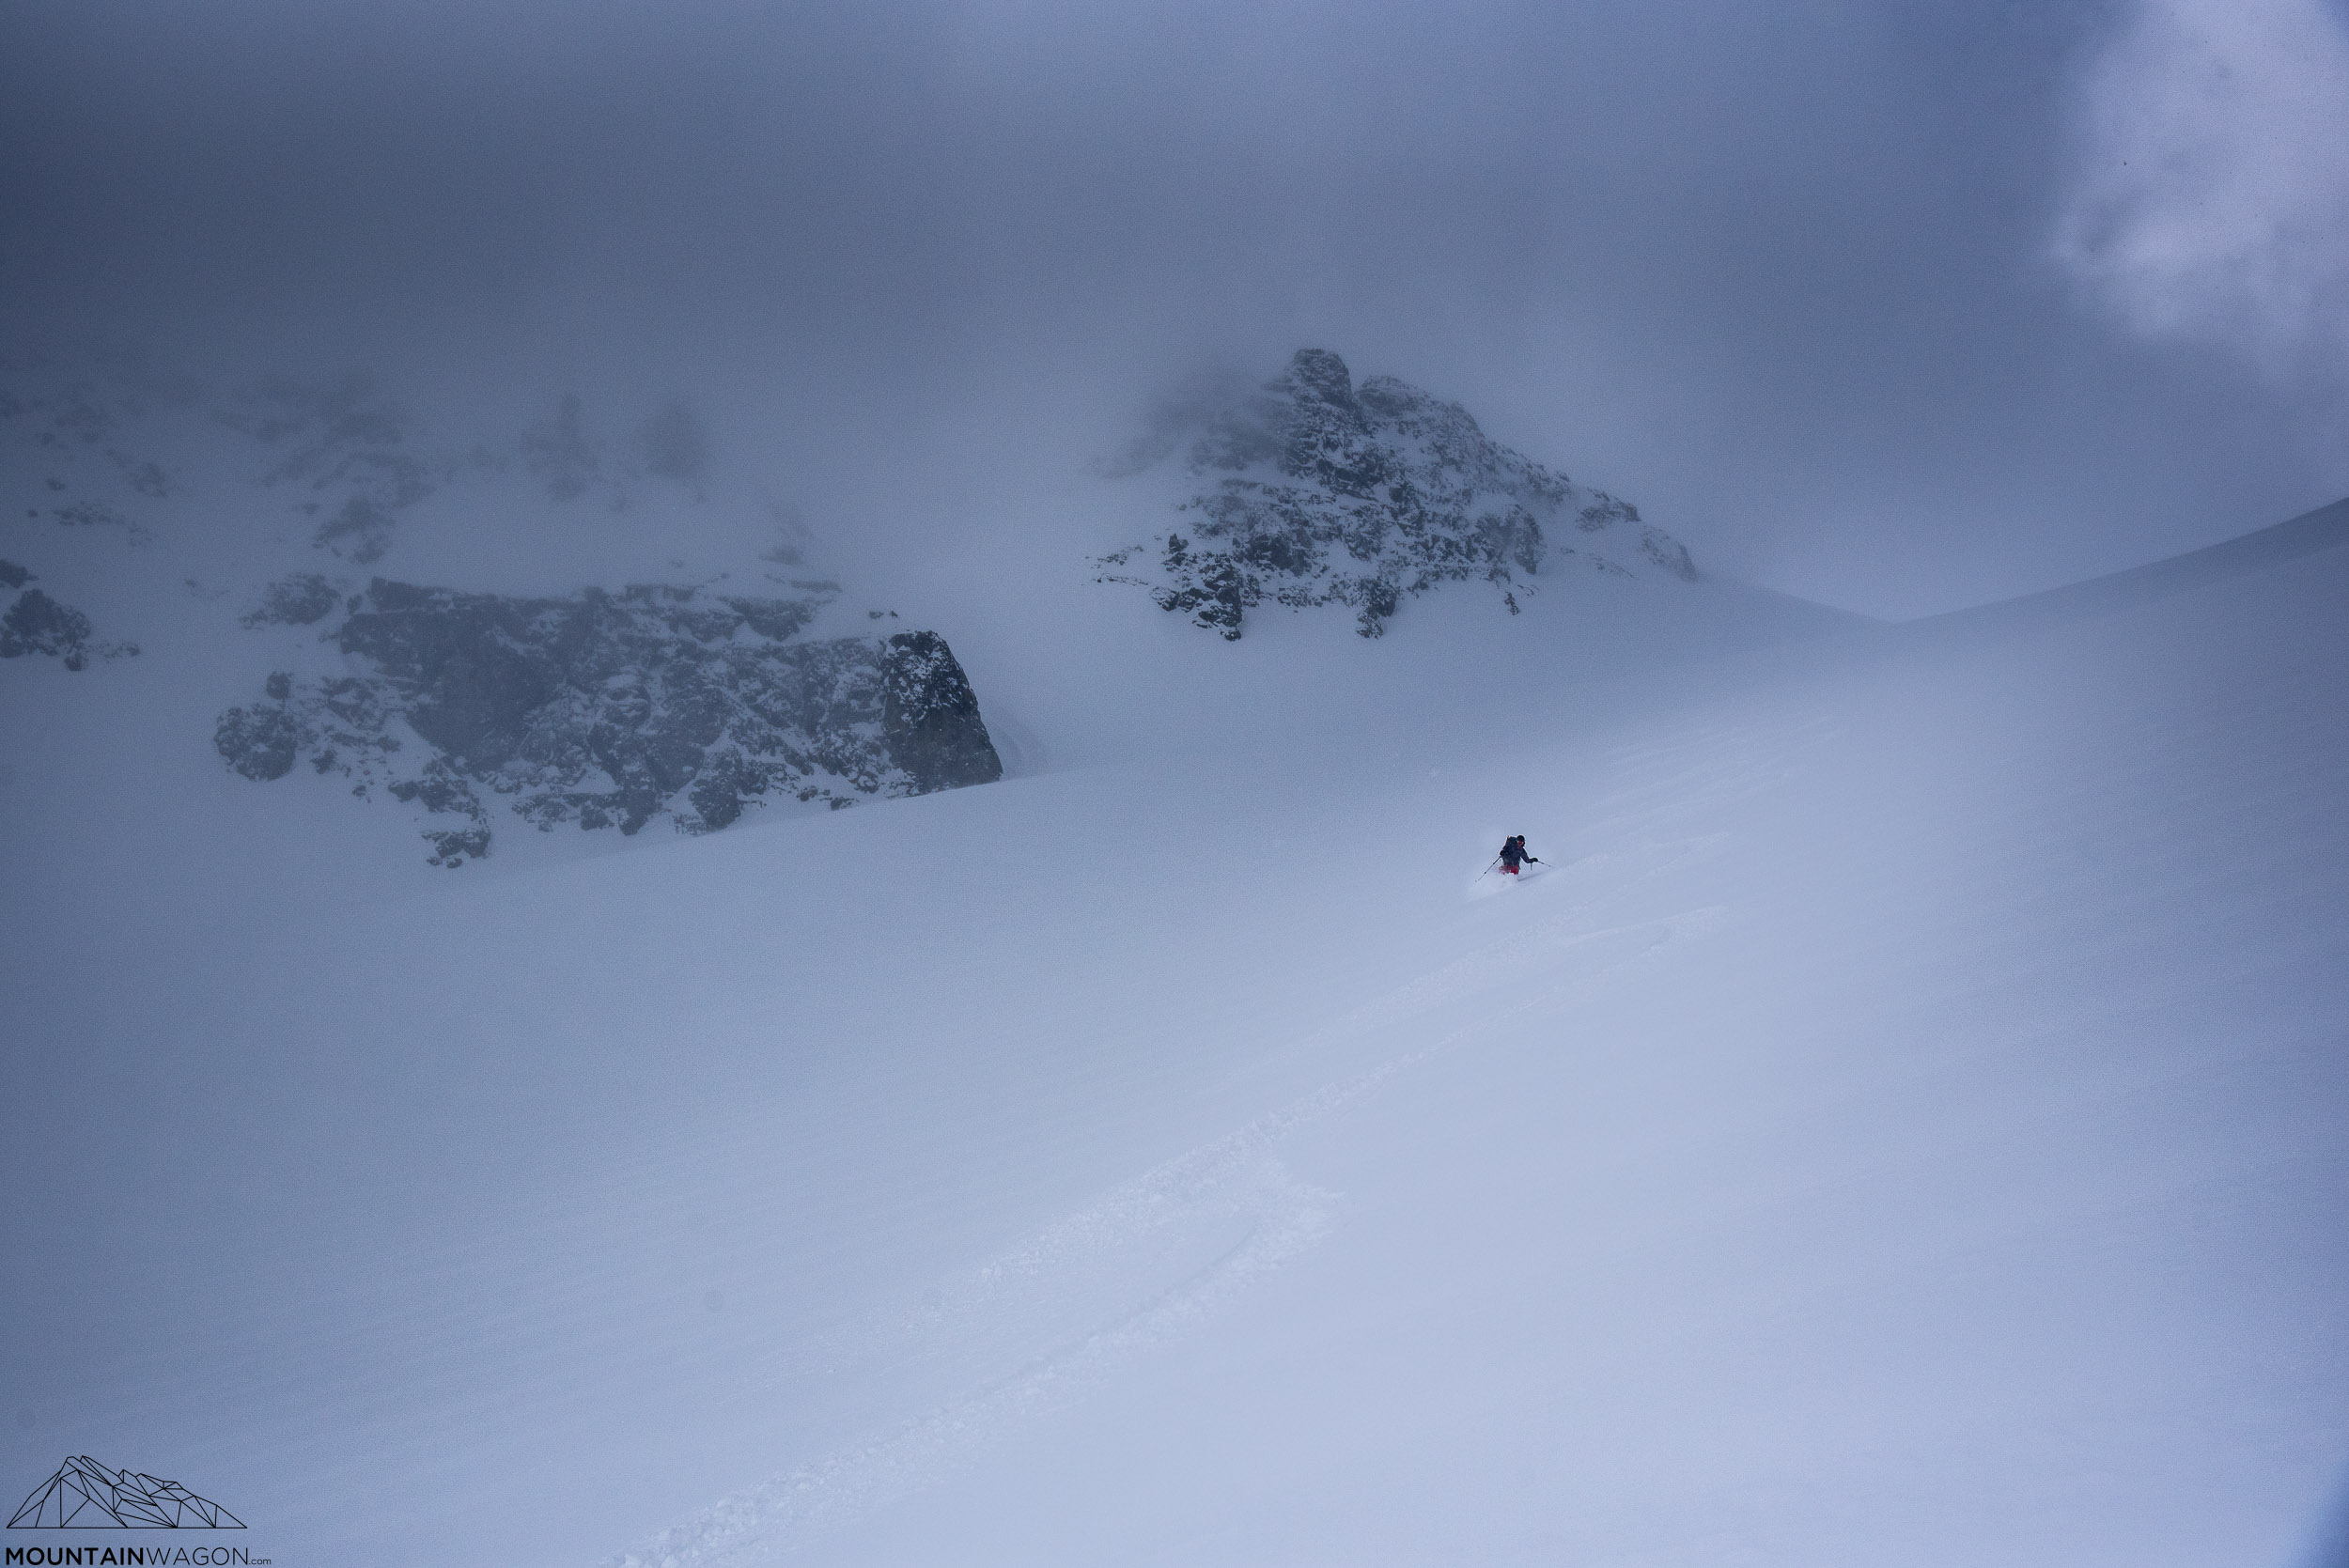 Well, the upshot of a big overnight storm is a fresh dump leading to unexpectedly awesome skiing.